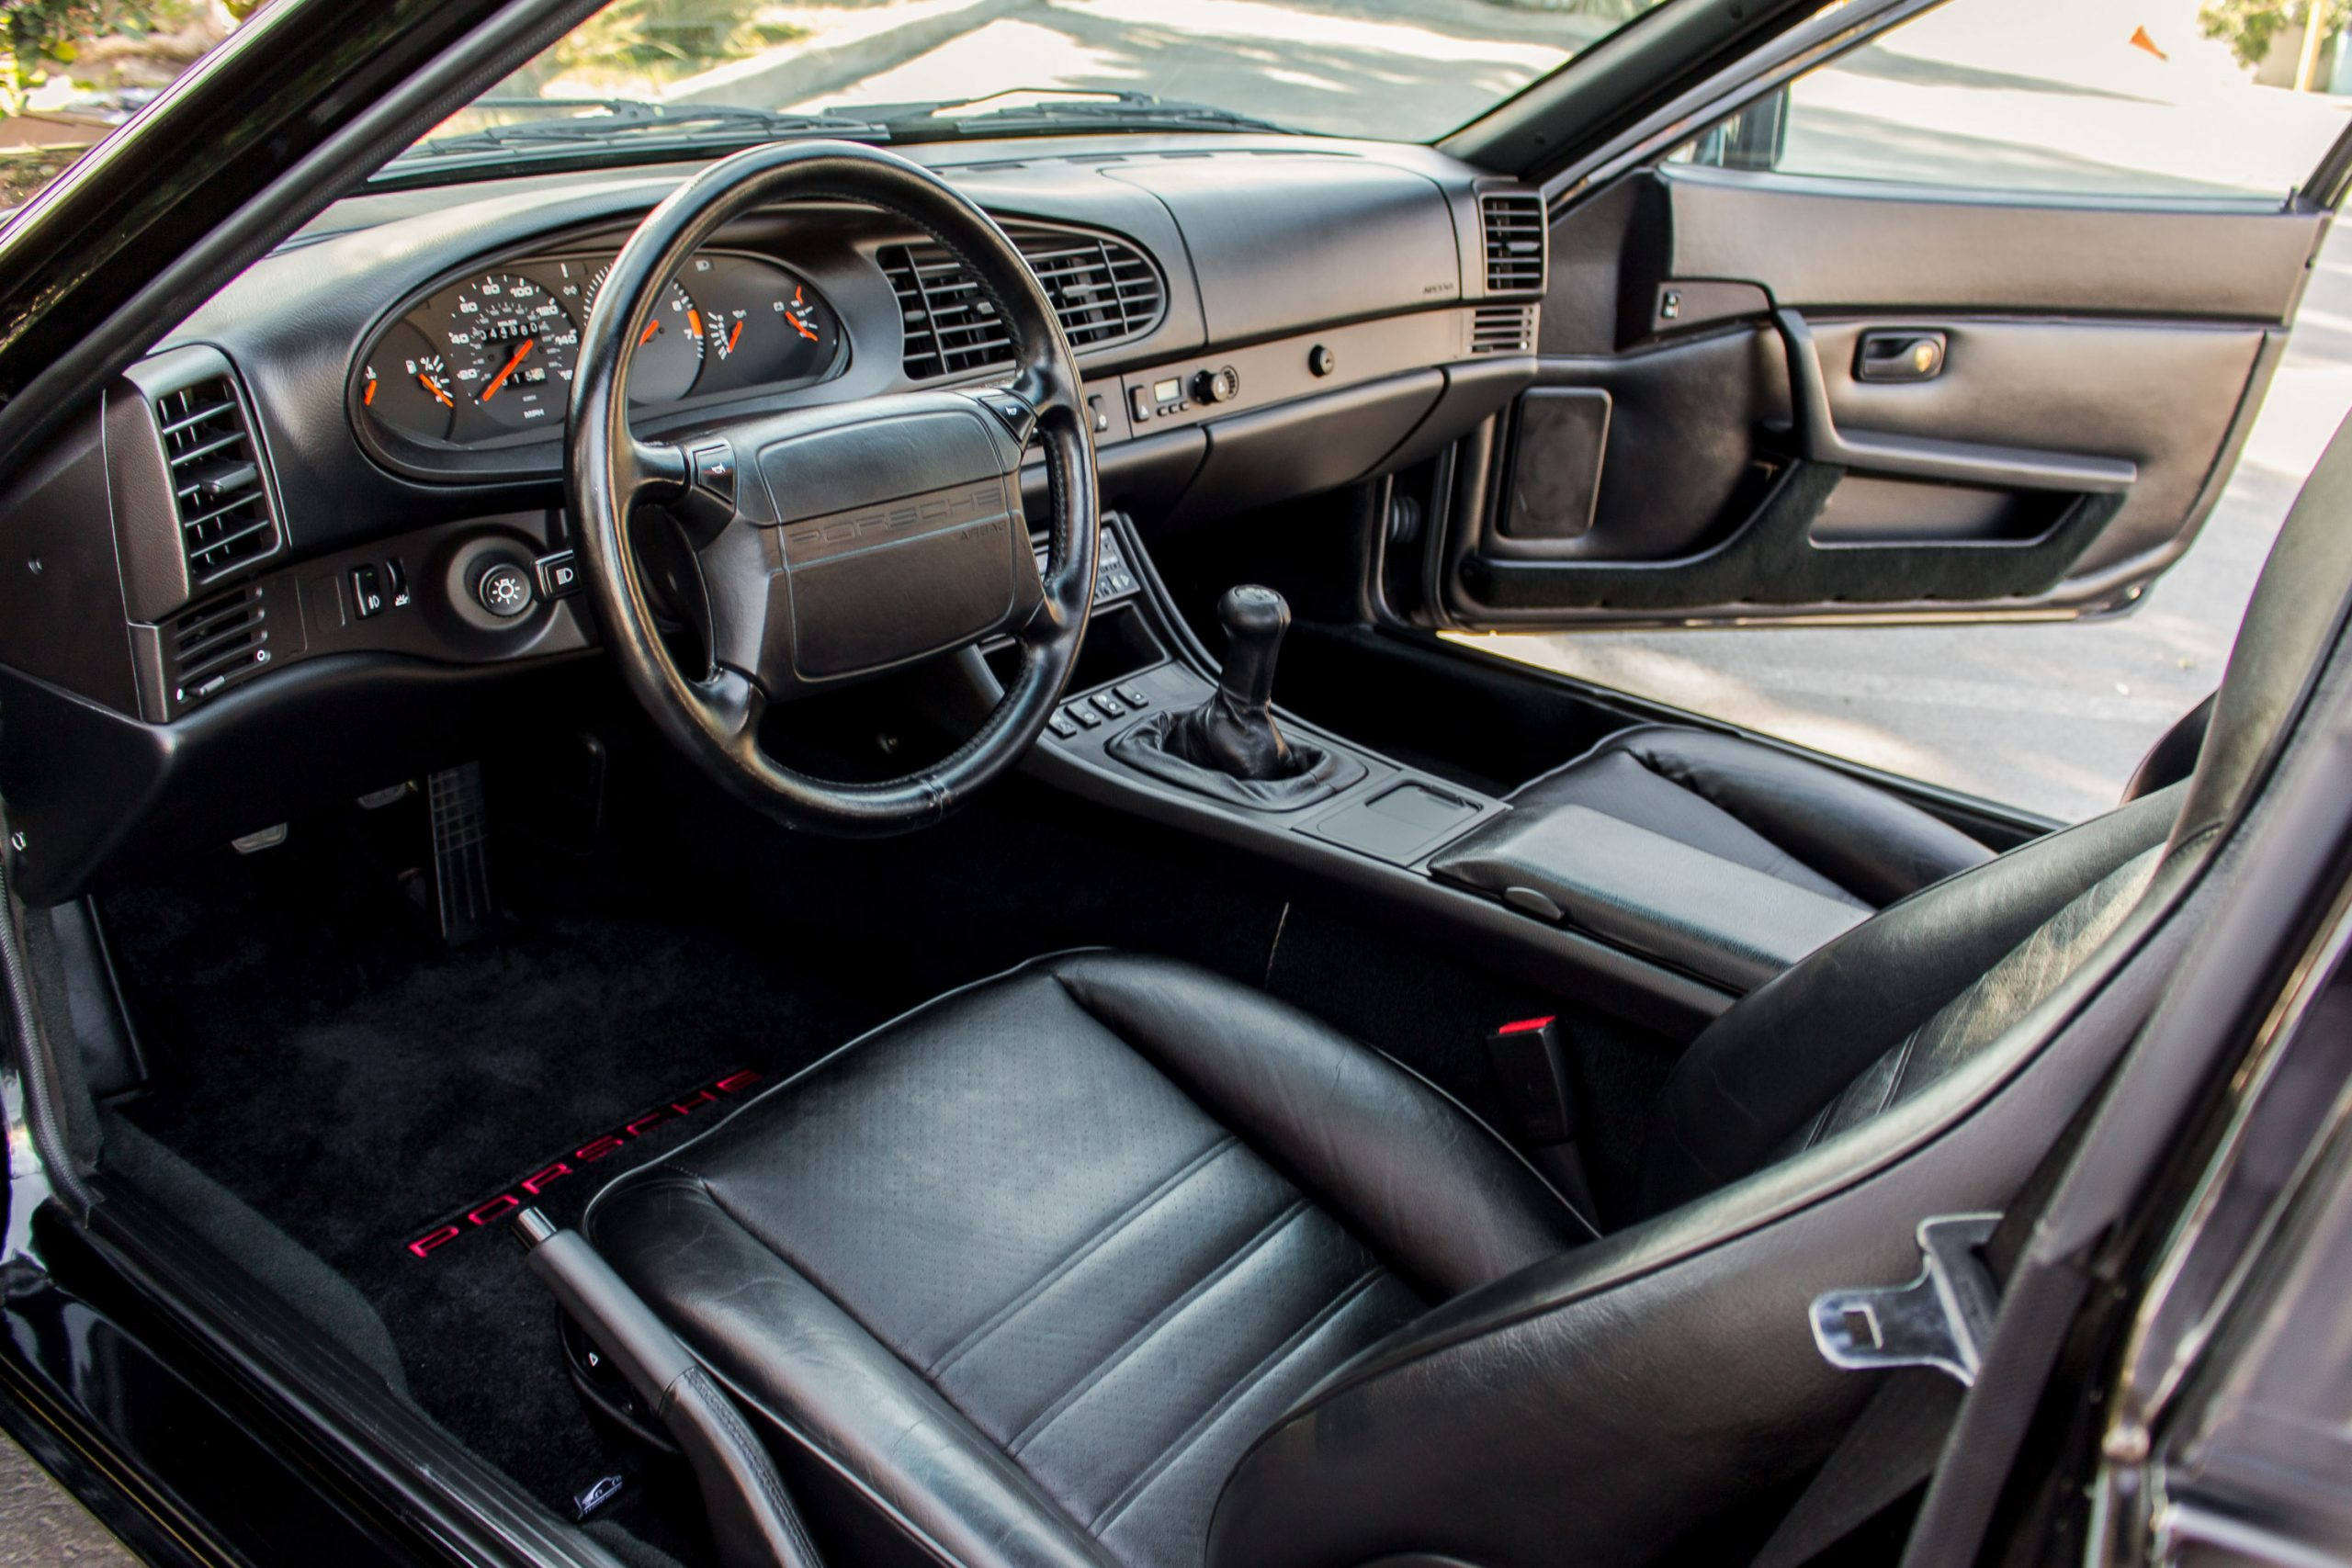 1991 Porsche 944 S2 Coupe interior